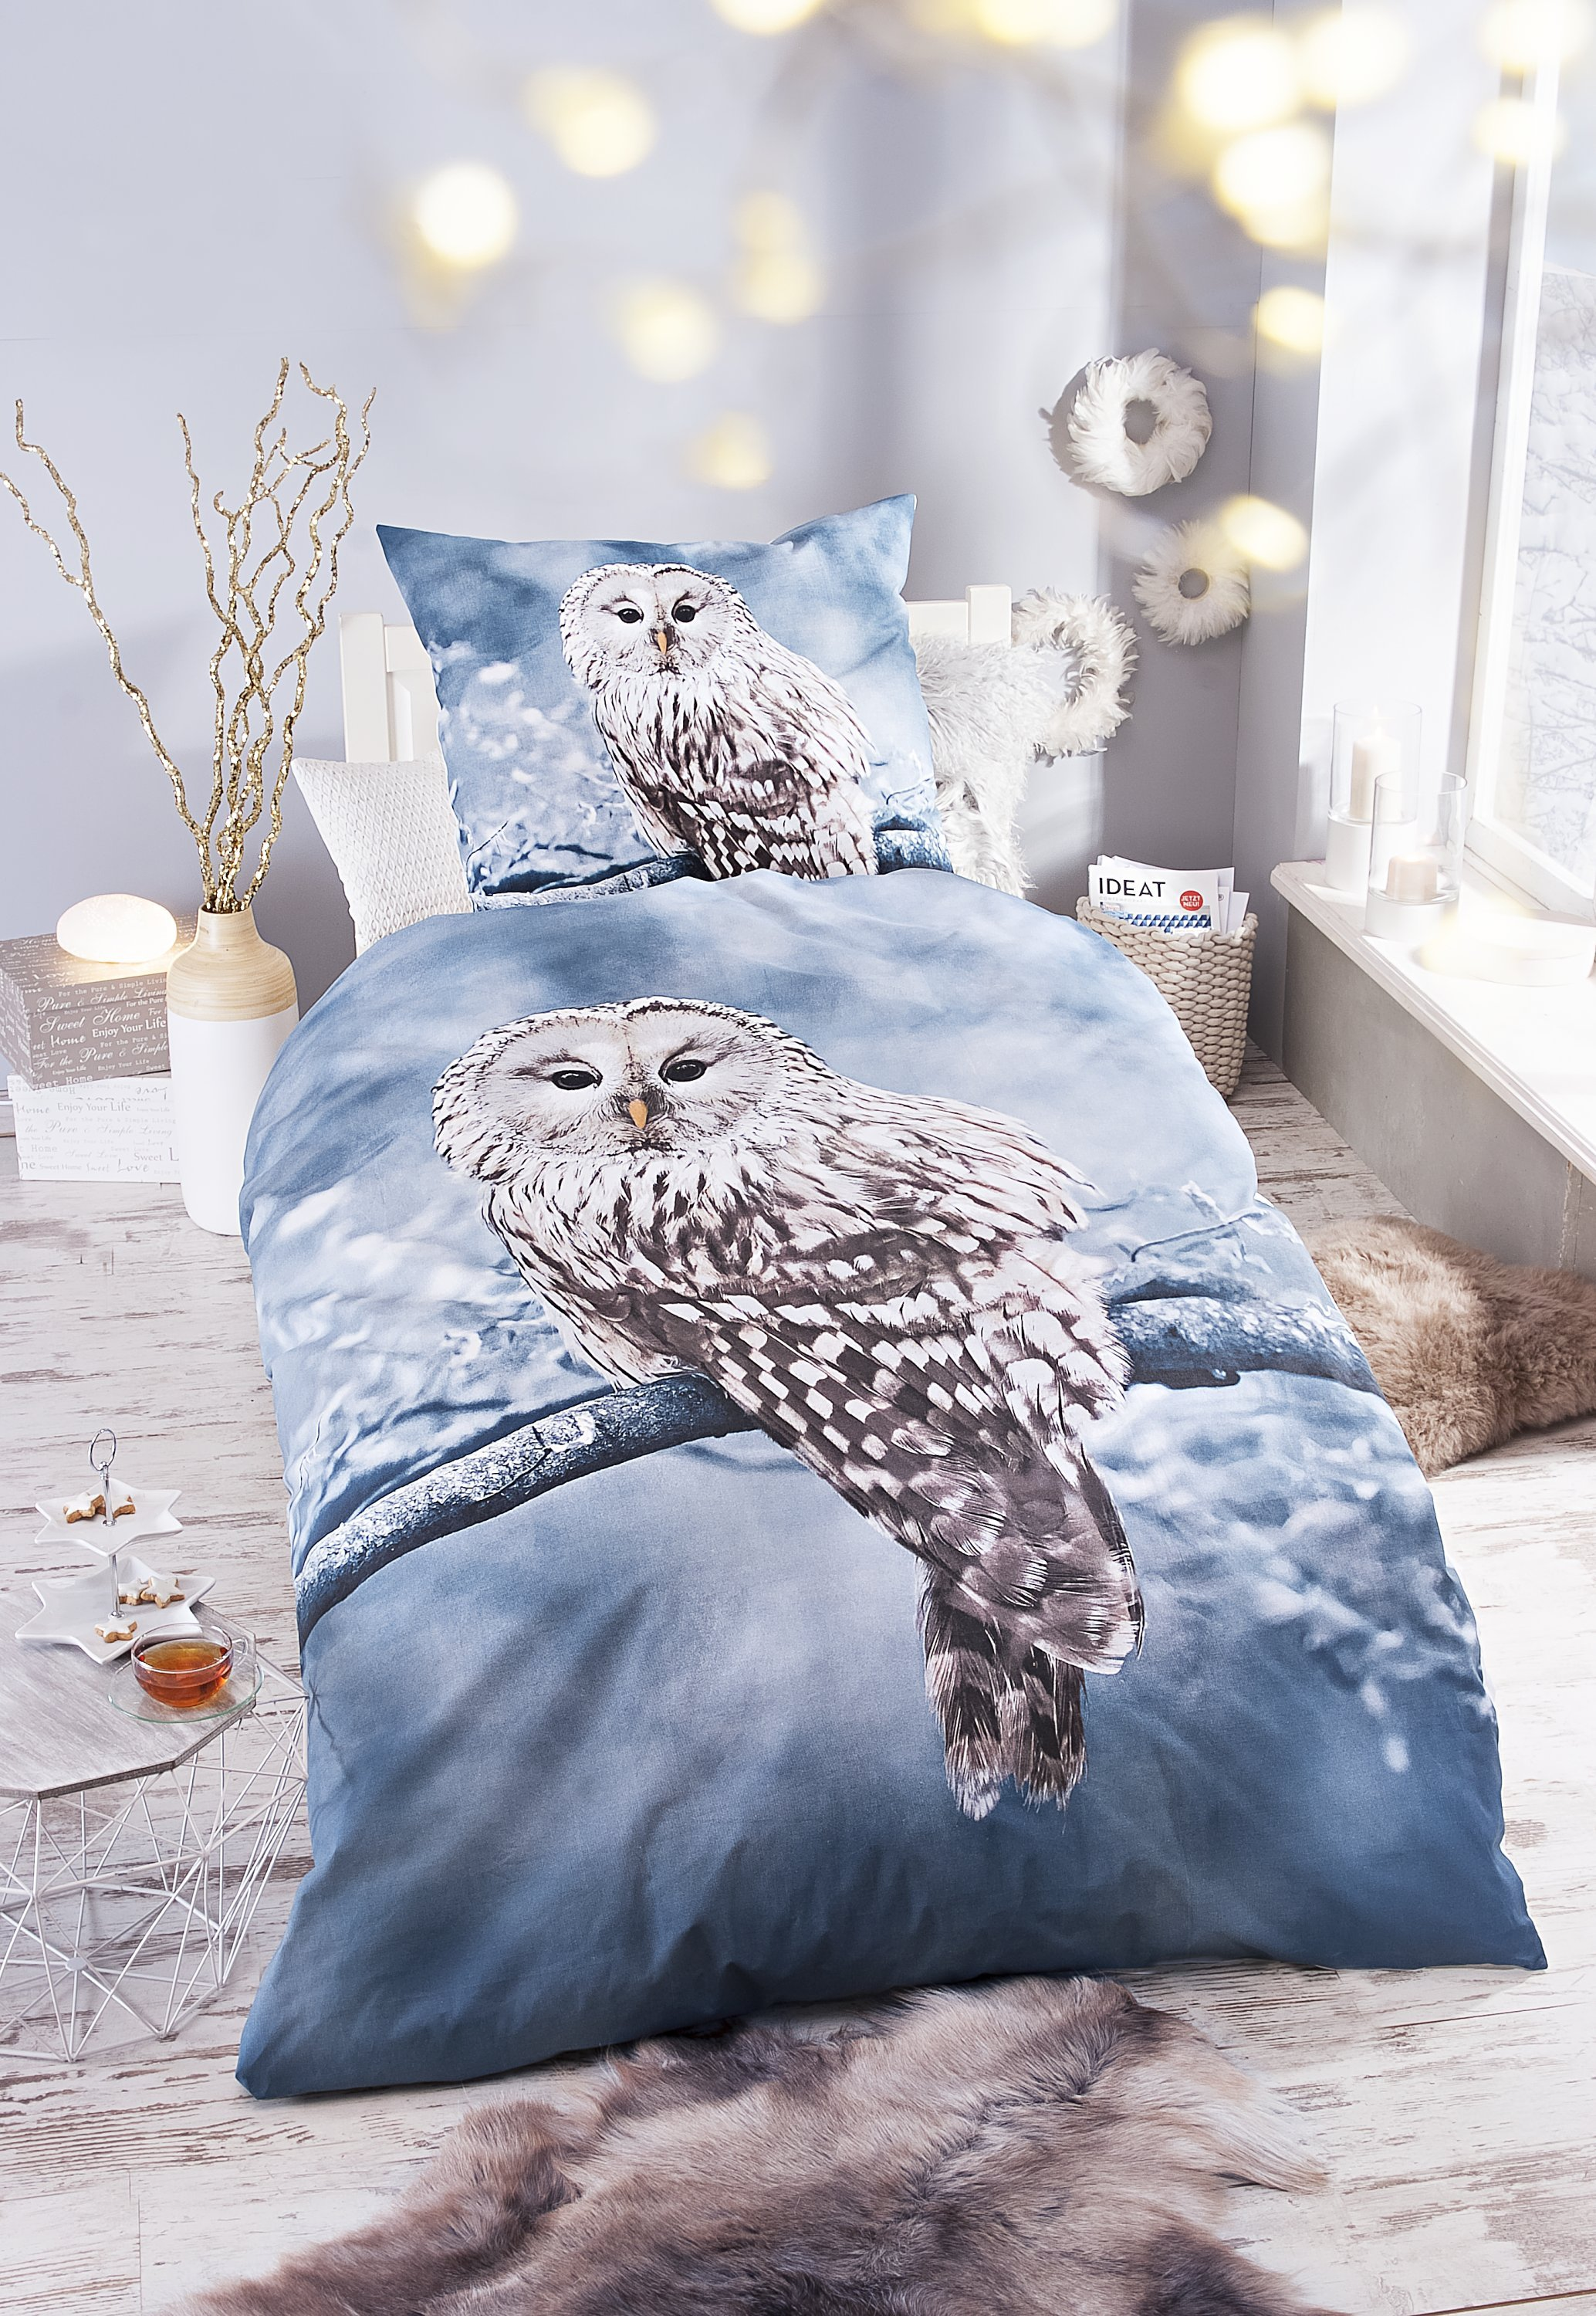 Breaking Bad Bettwäsche Bedding Snowy Owl Bettwäsche-garnitur Mit Eulen Motiv 2 X 155 Cm X 220 Cm Home, Furniture & Diy Itkart.org